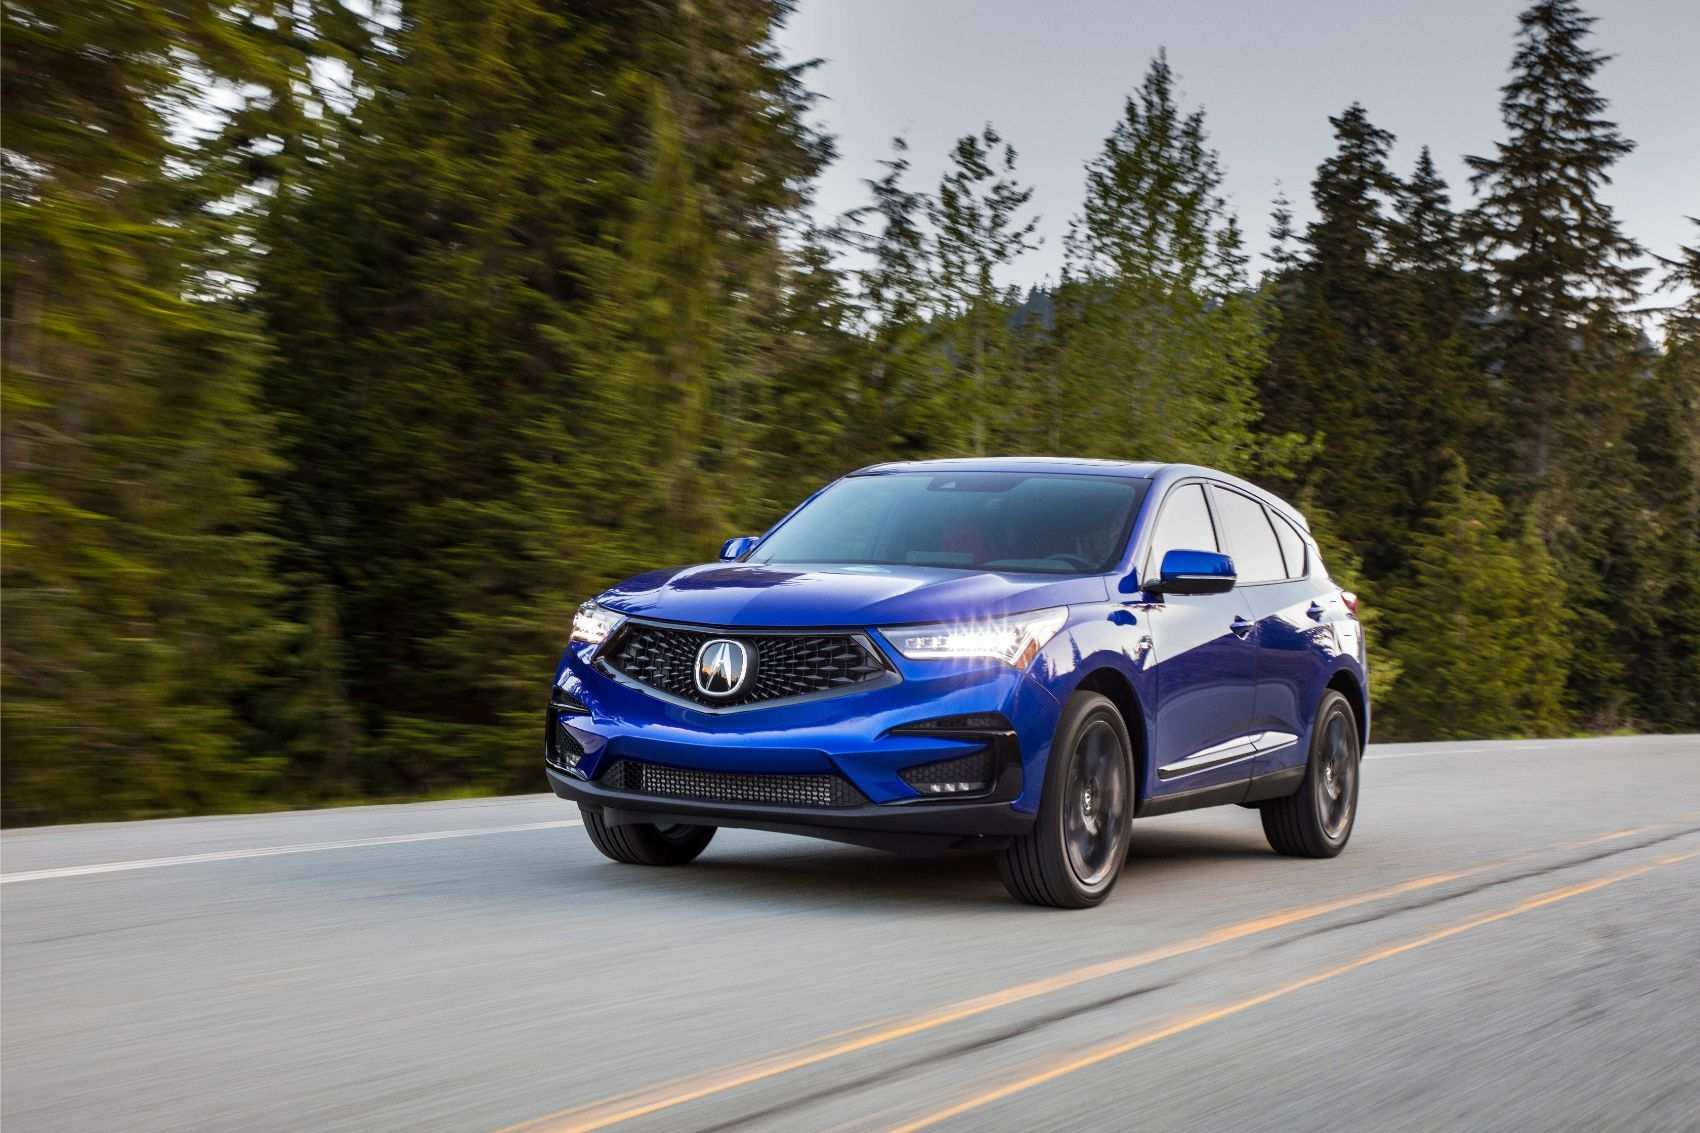 81 New 2020 Acura Rdx Release Date Style